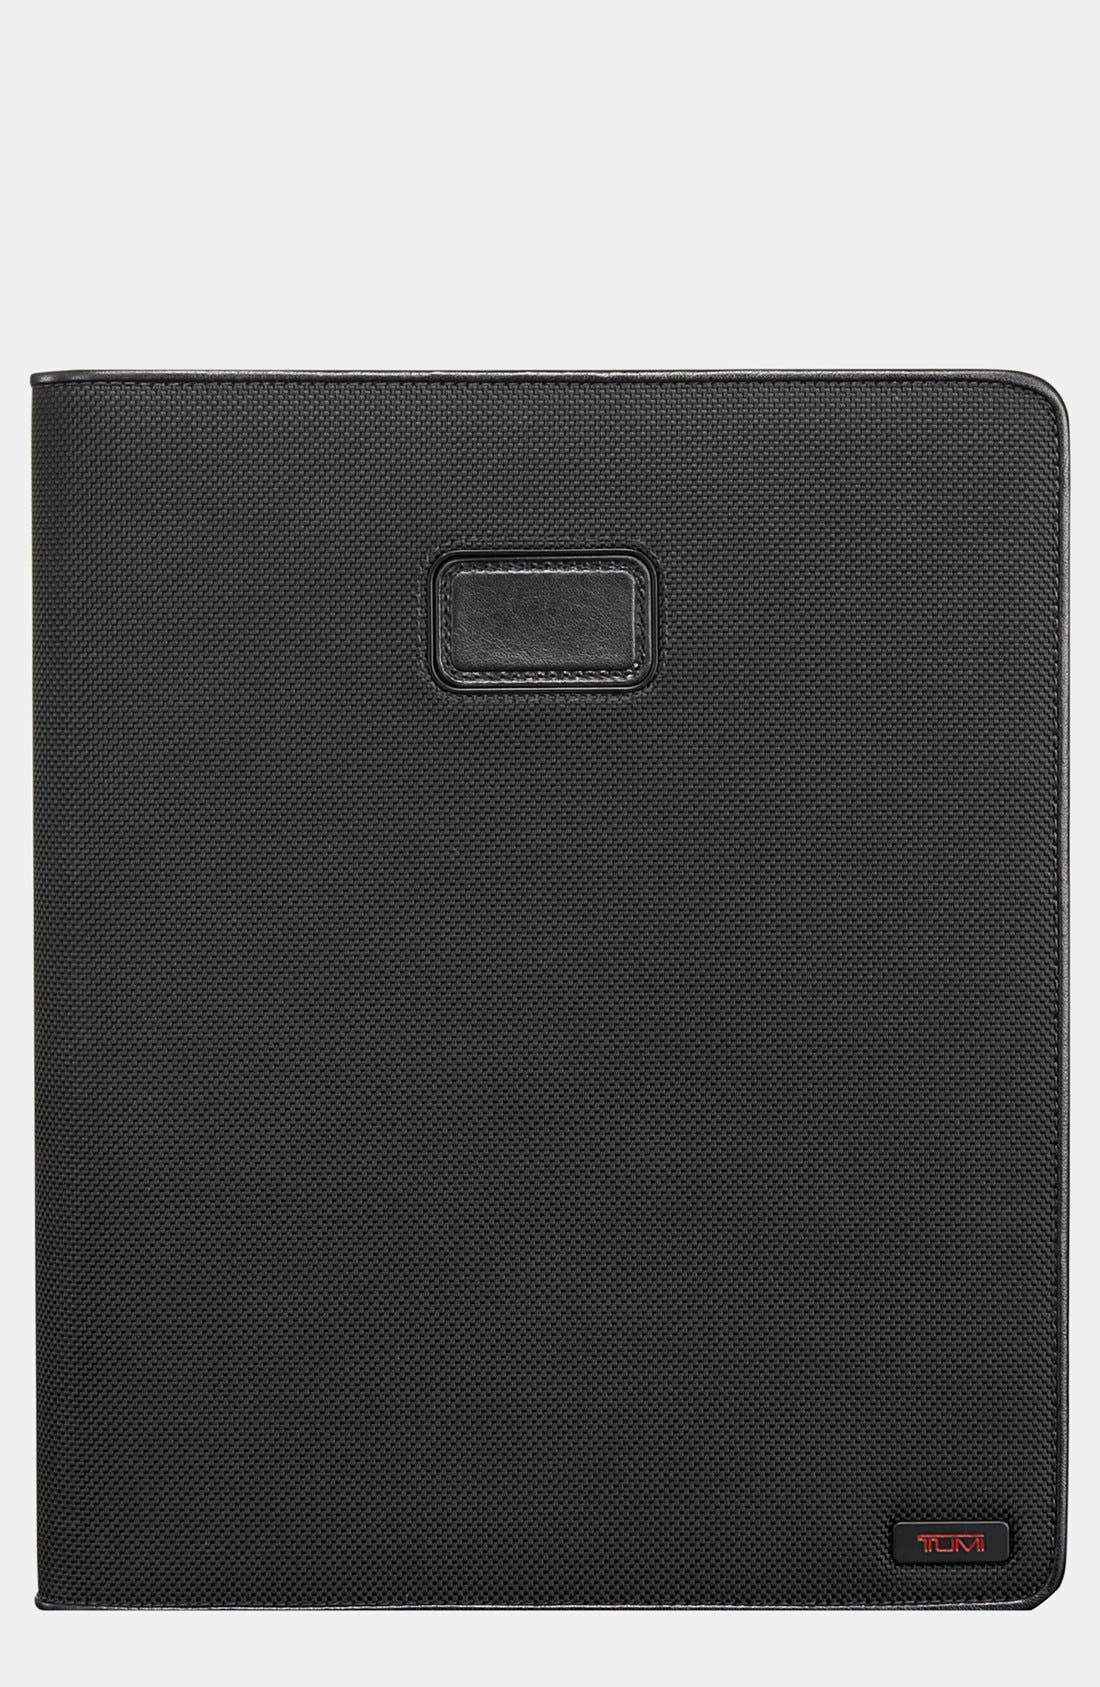 Main Image - Tumi iPad Case